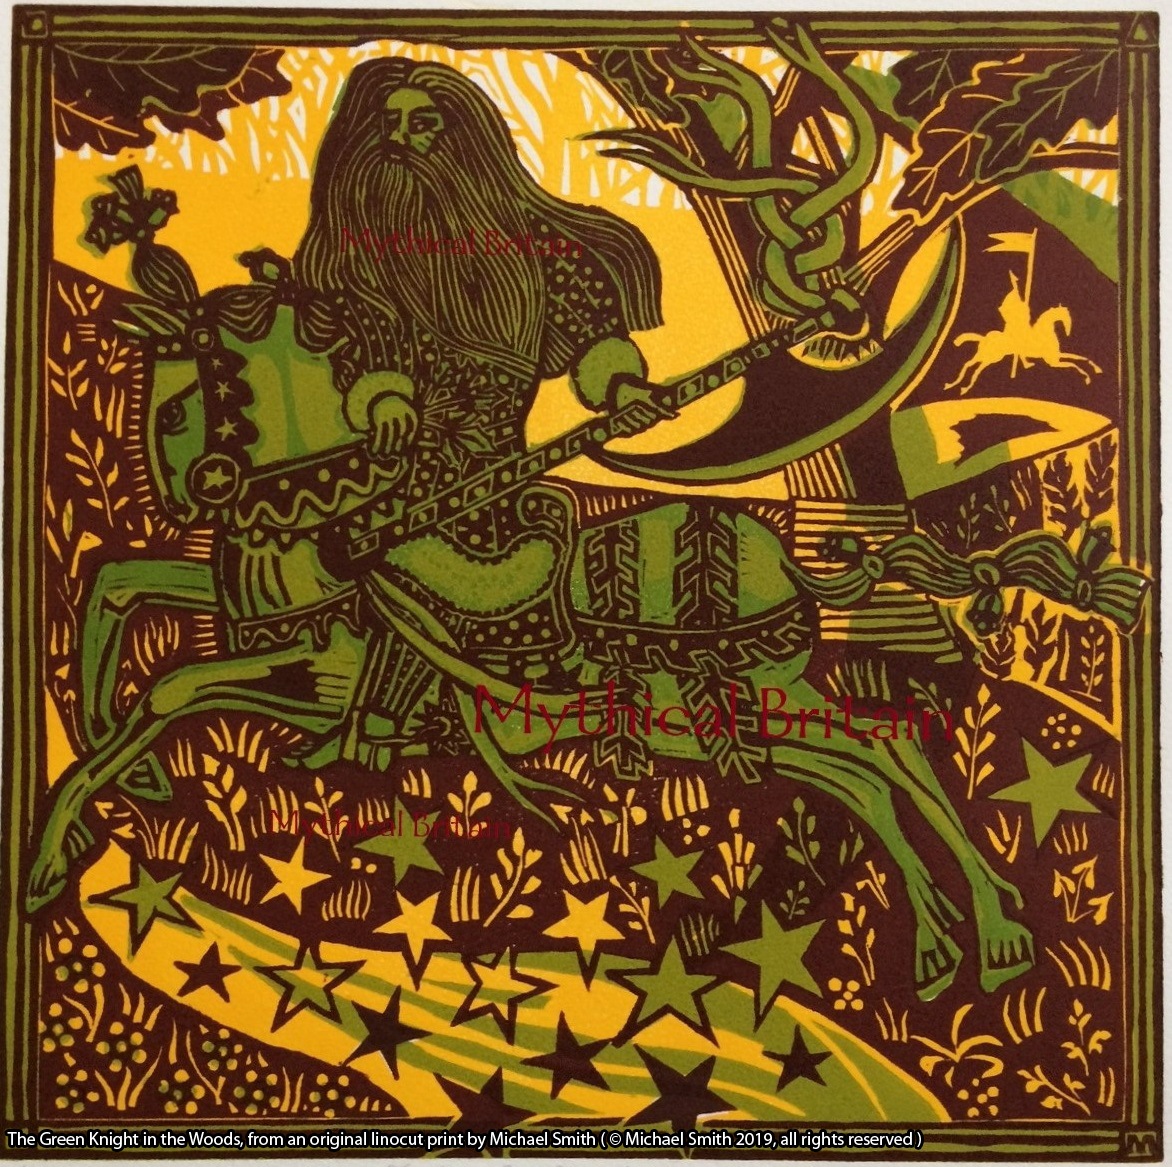 The Green Knight in the Woods, from an original linocut print by Michael Smith ( © Michael Smith 2019, all rights reserved )